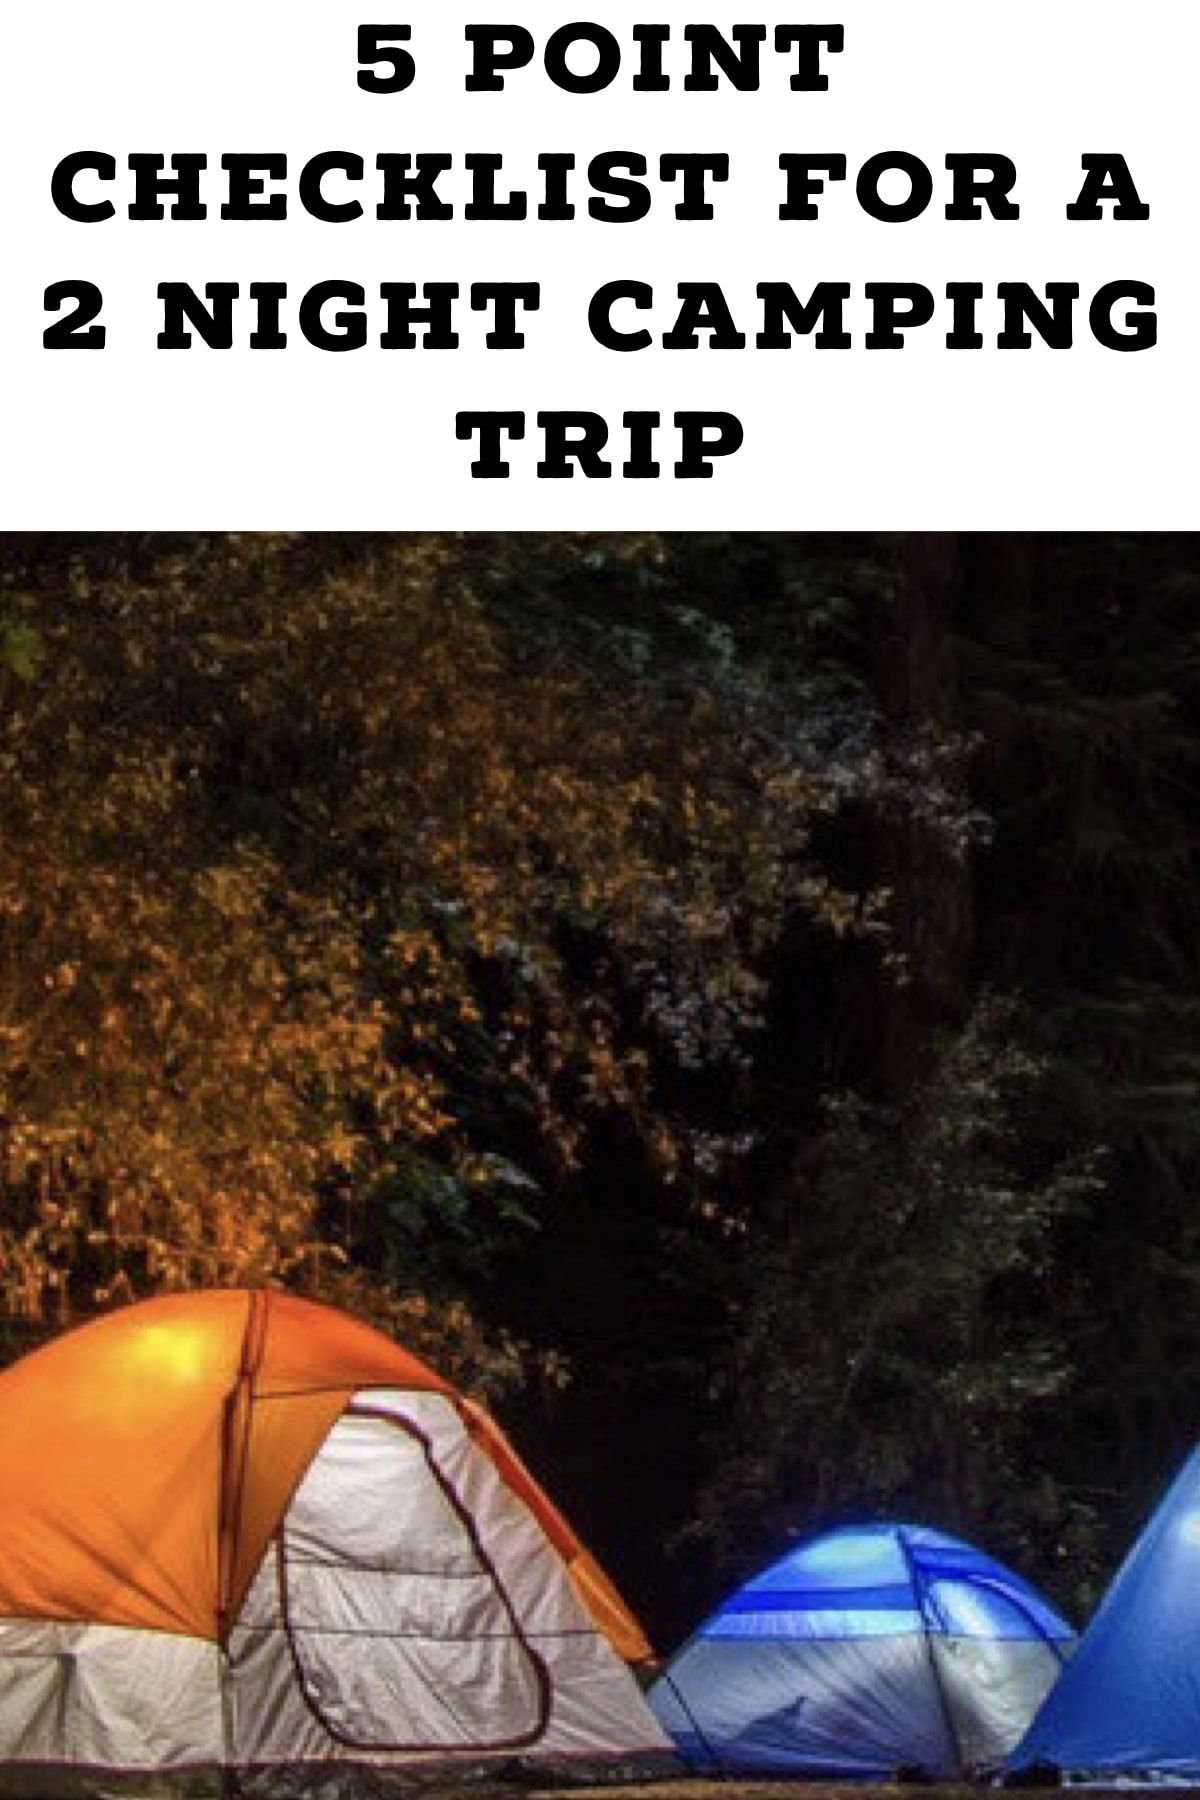 If You Want To Go Camping Make Sure To Read This Article First I Love This Checklist Camping Checklist Camping Trips Outdoor Camping